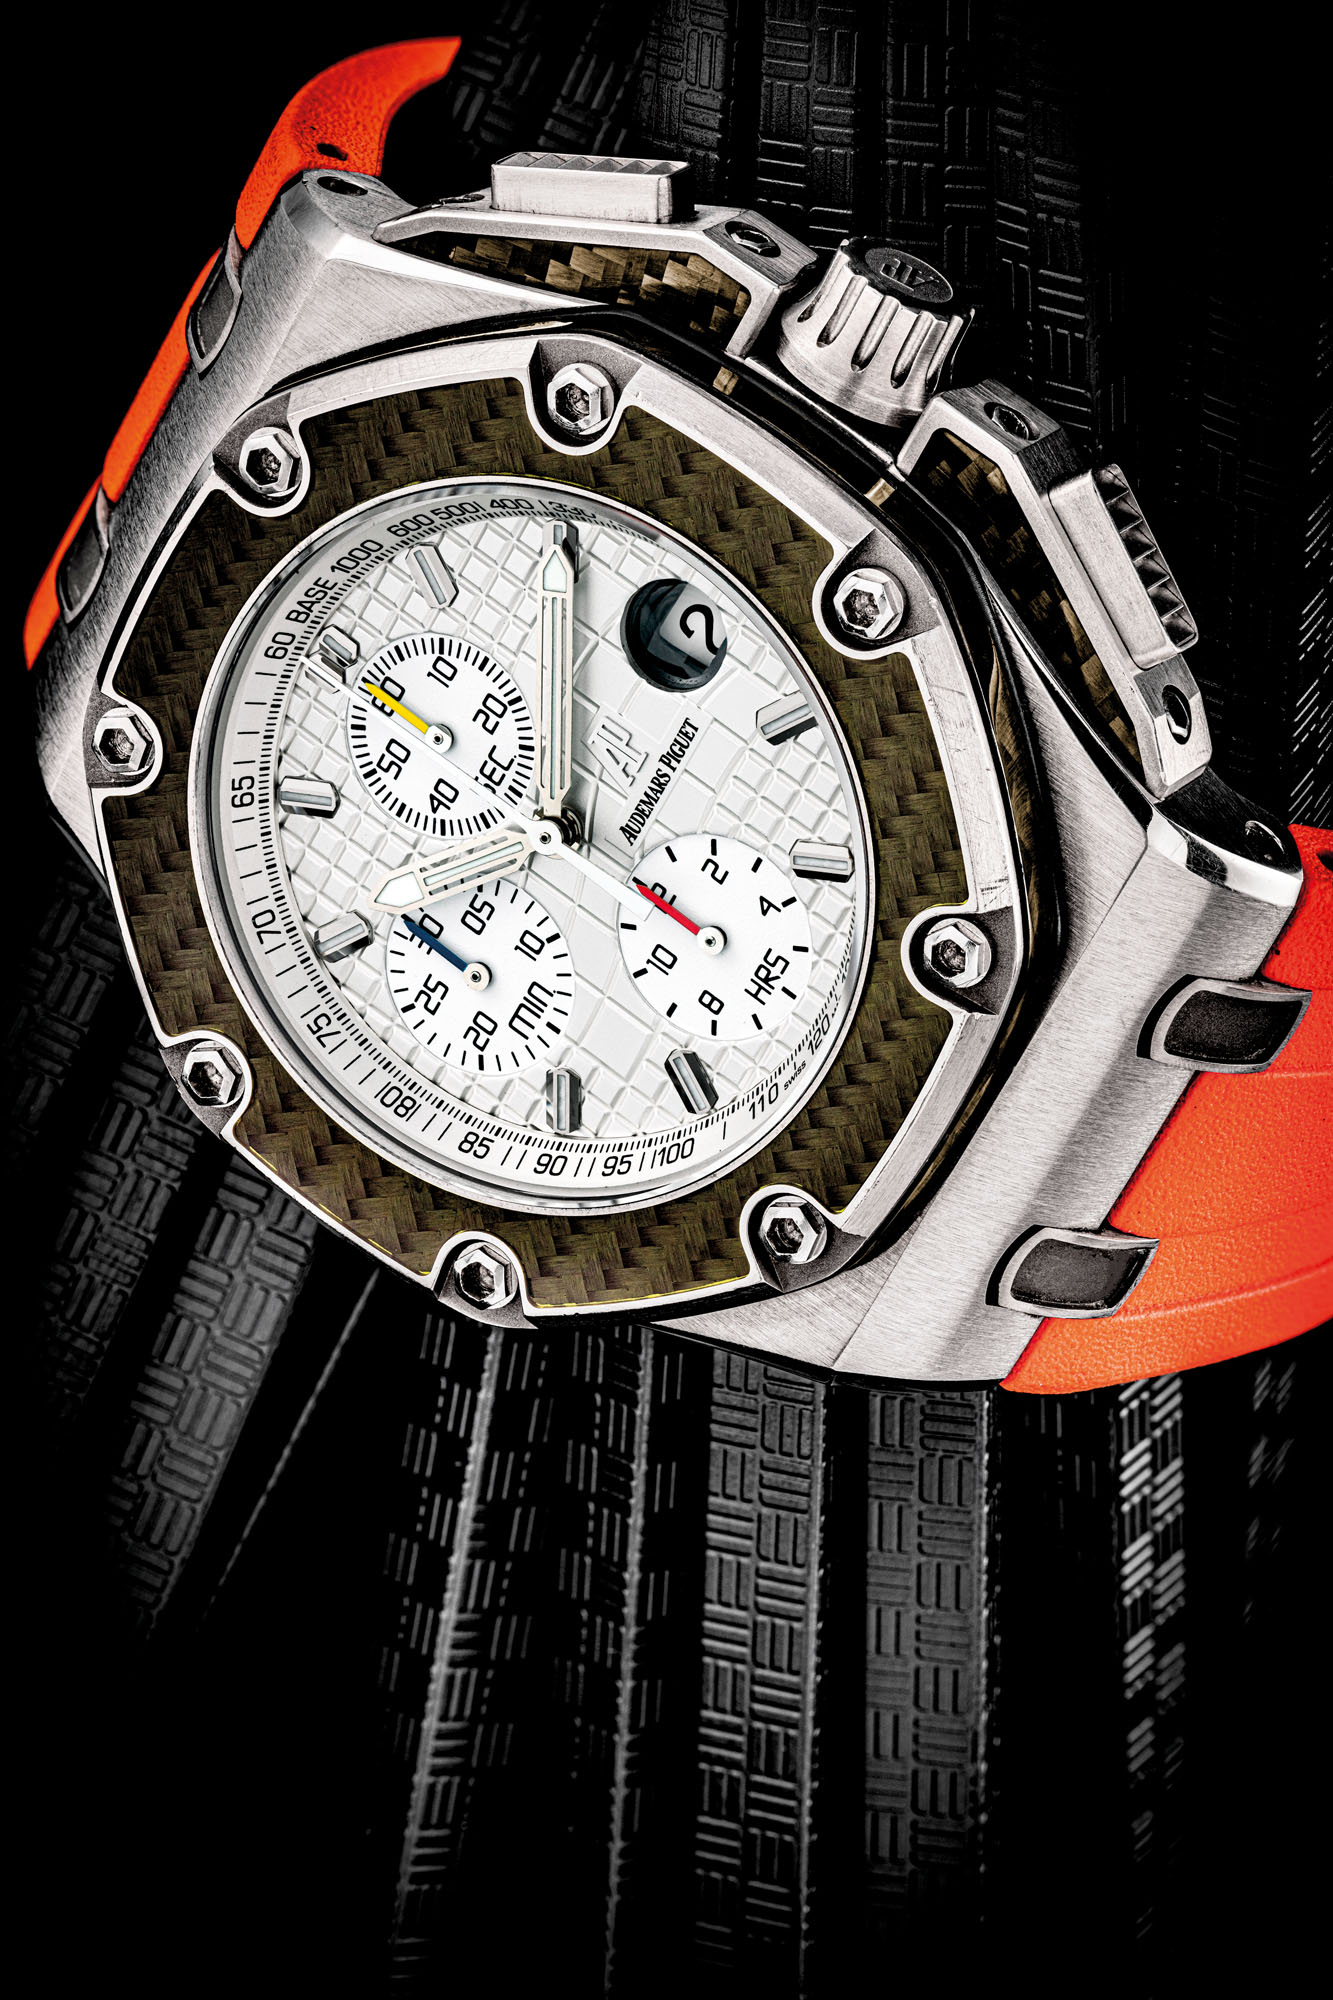 AUDEMARS PIGUET. A TITANIUM AND CARBON LIMITED EDITION AUTOMATIC CHRONOGRAPH WRISTWATCH WITH DATE